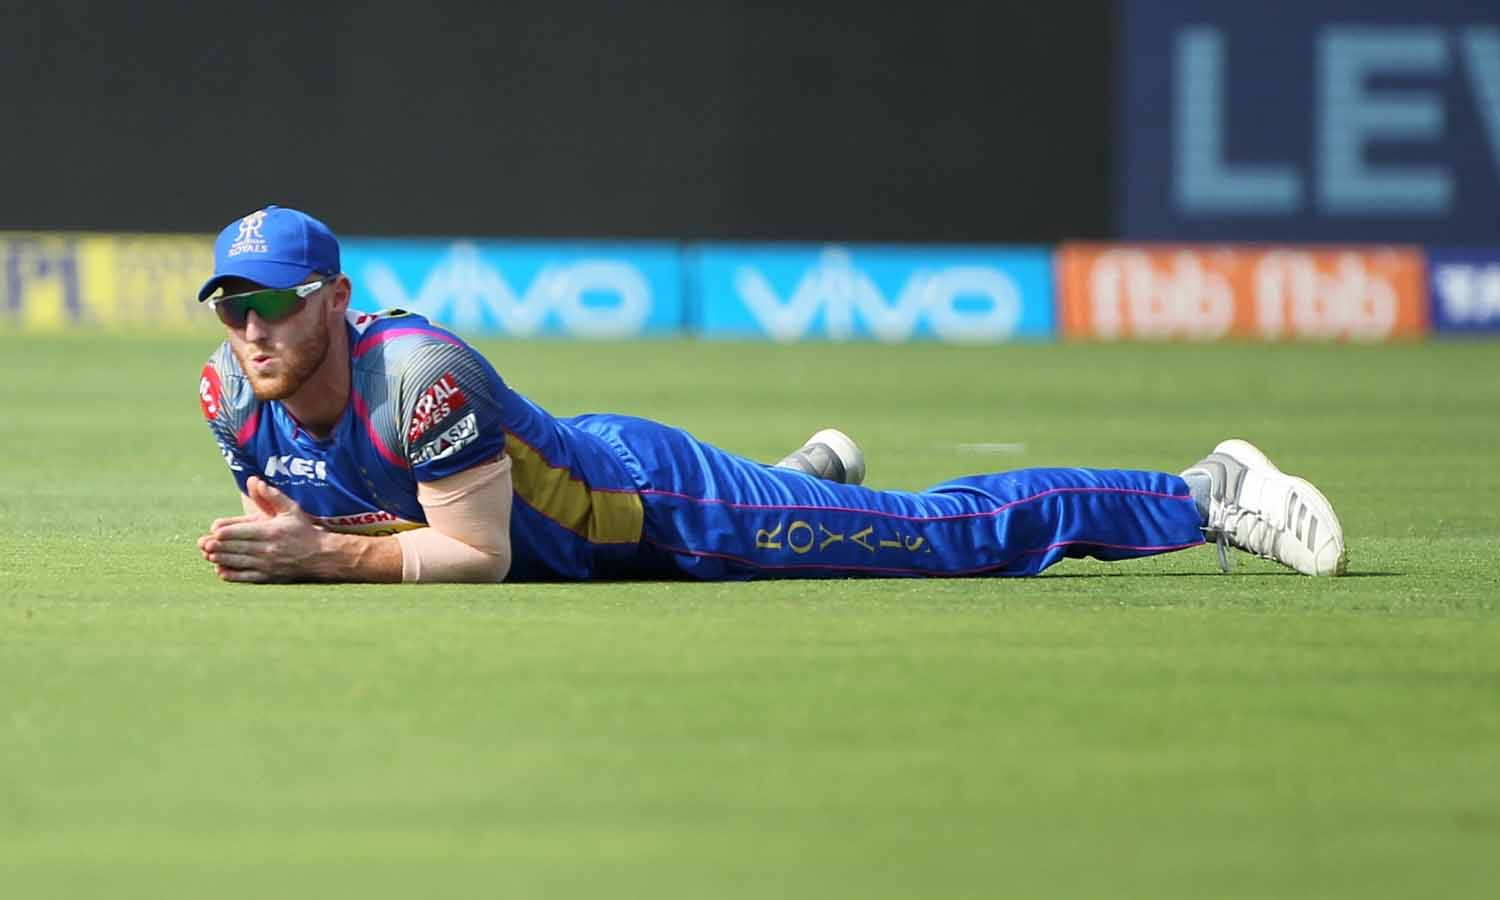 Ben Stokes Of Rajasthan Royals During An IPL 2018 Images